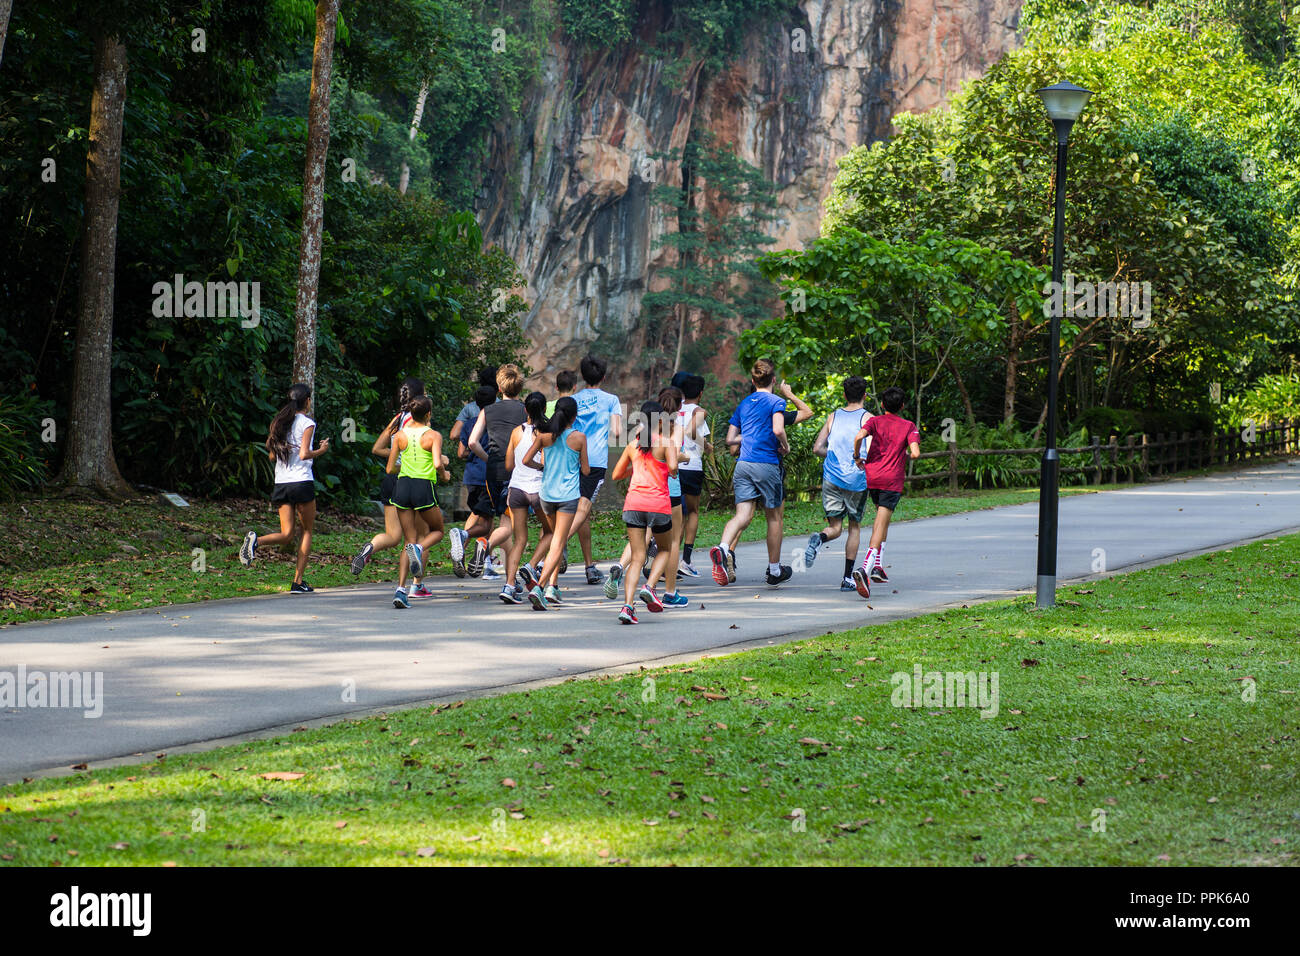 A group of runners consists of males and females running together on a park path - Stock Image